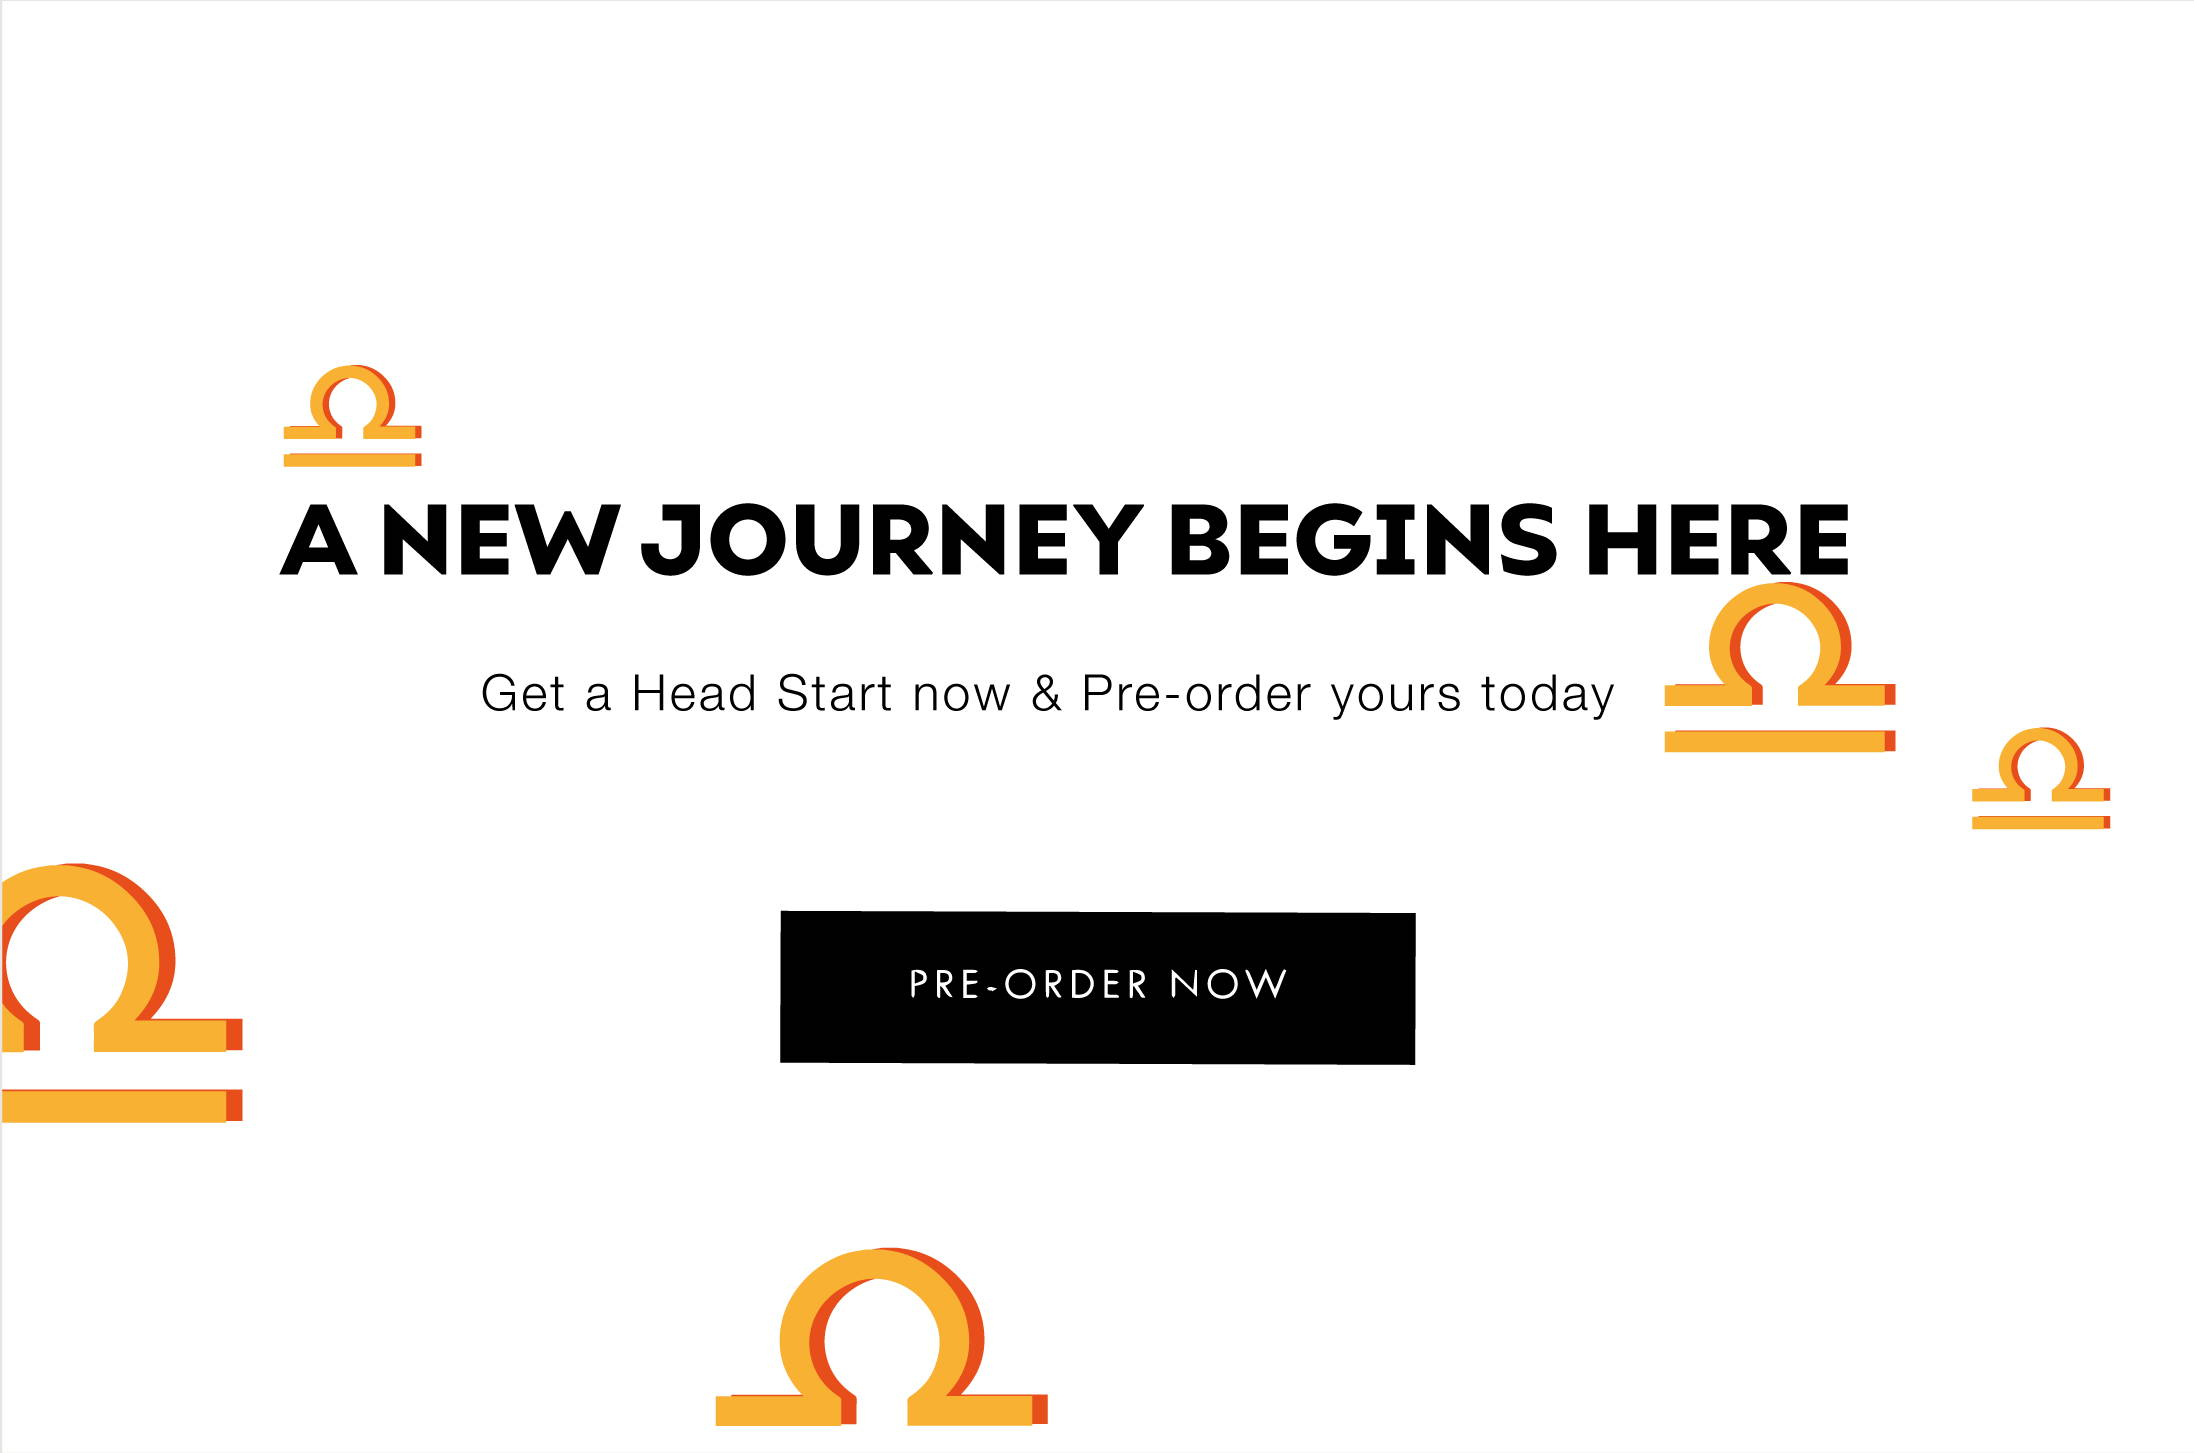 A New Journey Begins Here - Get a Head Start now & Pre-order today